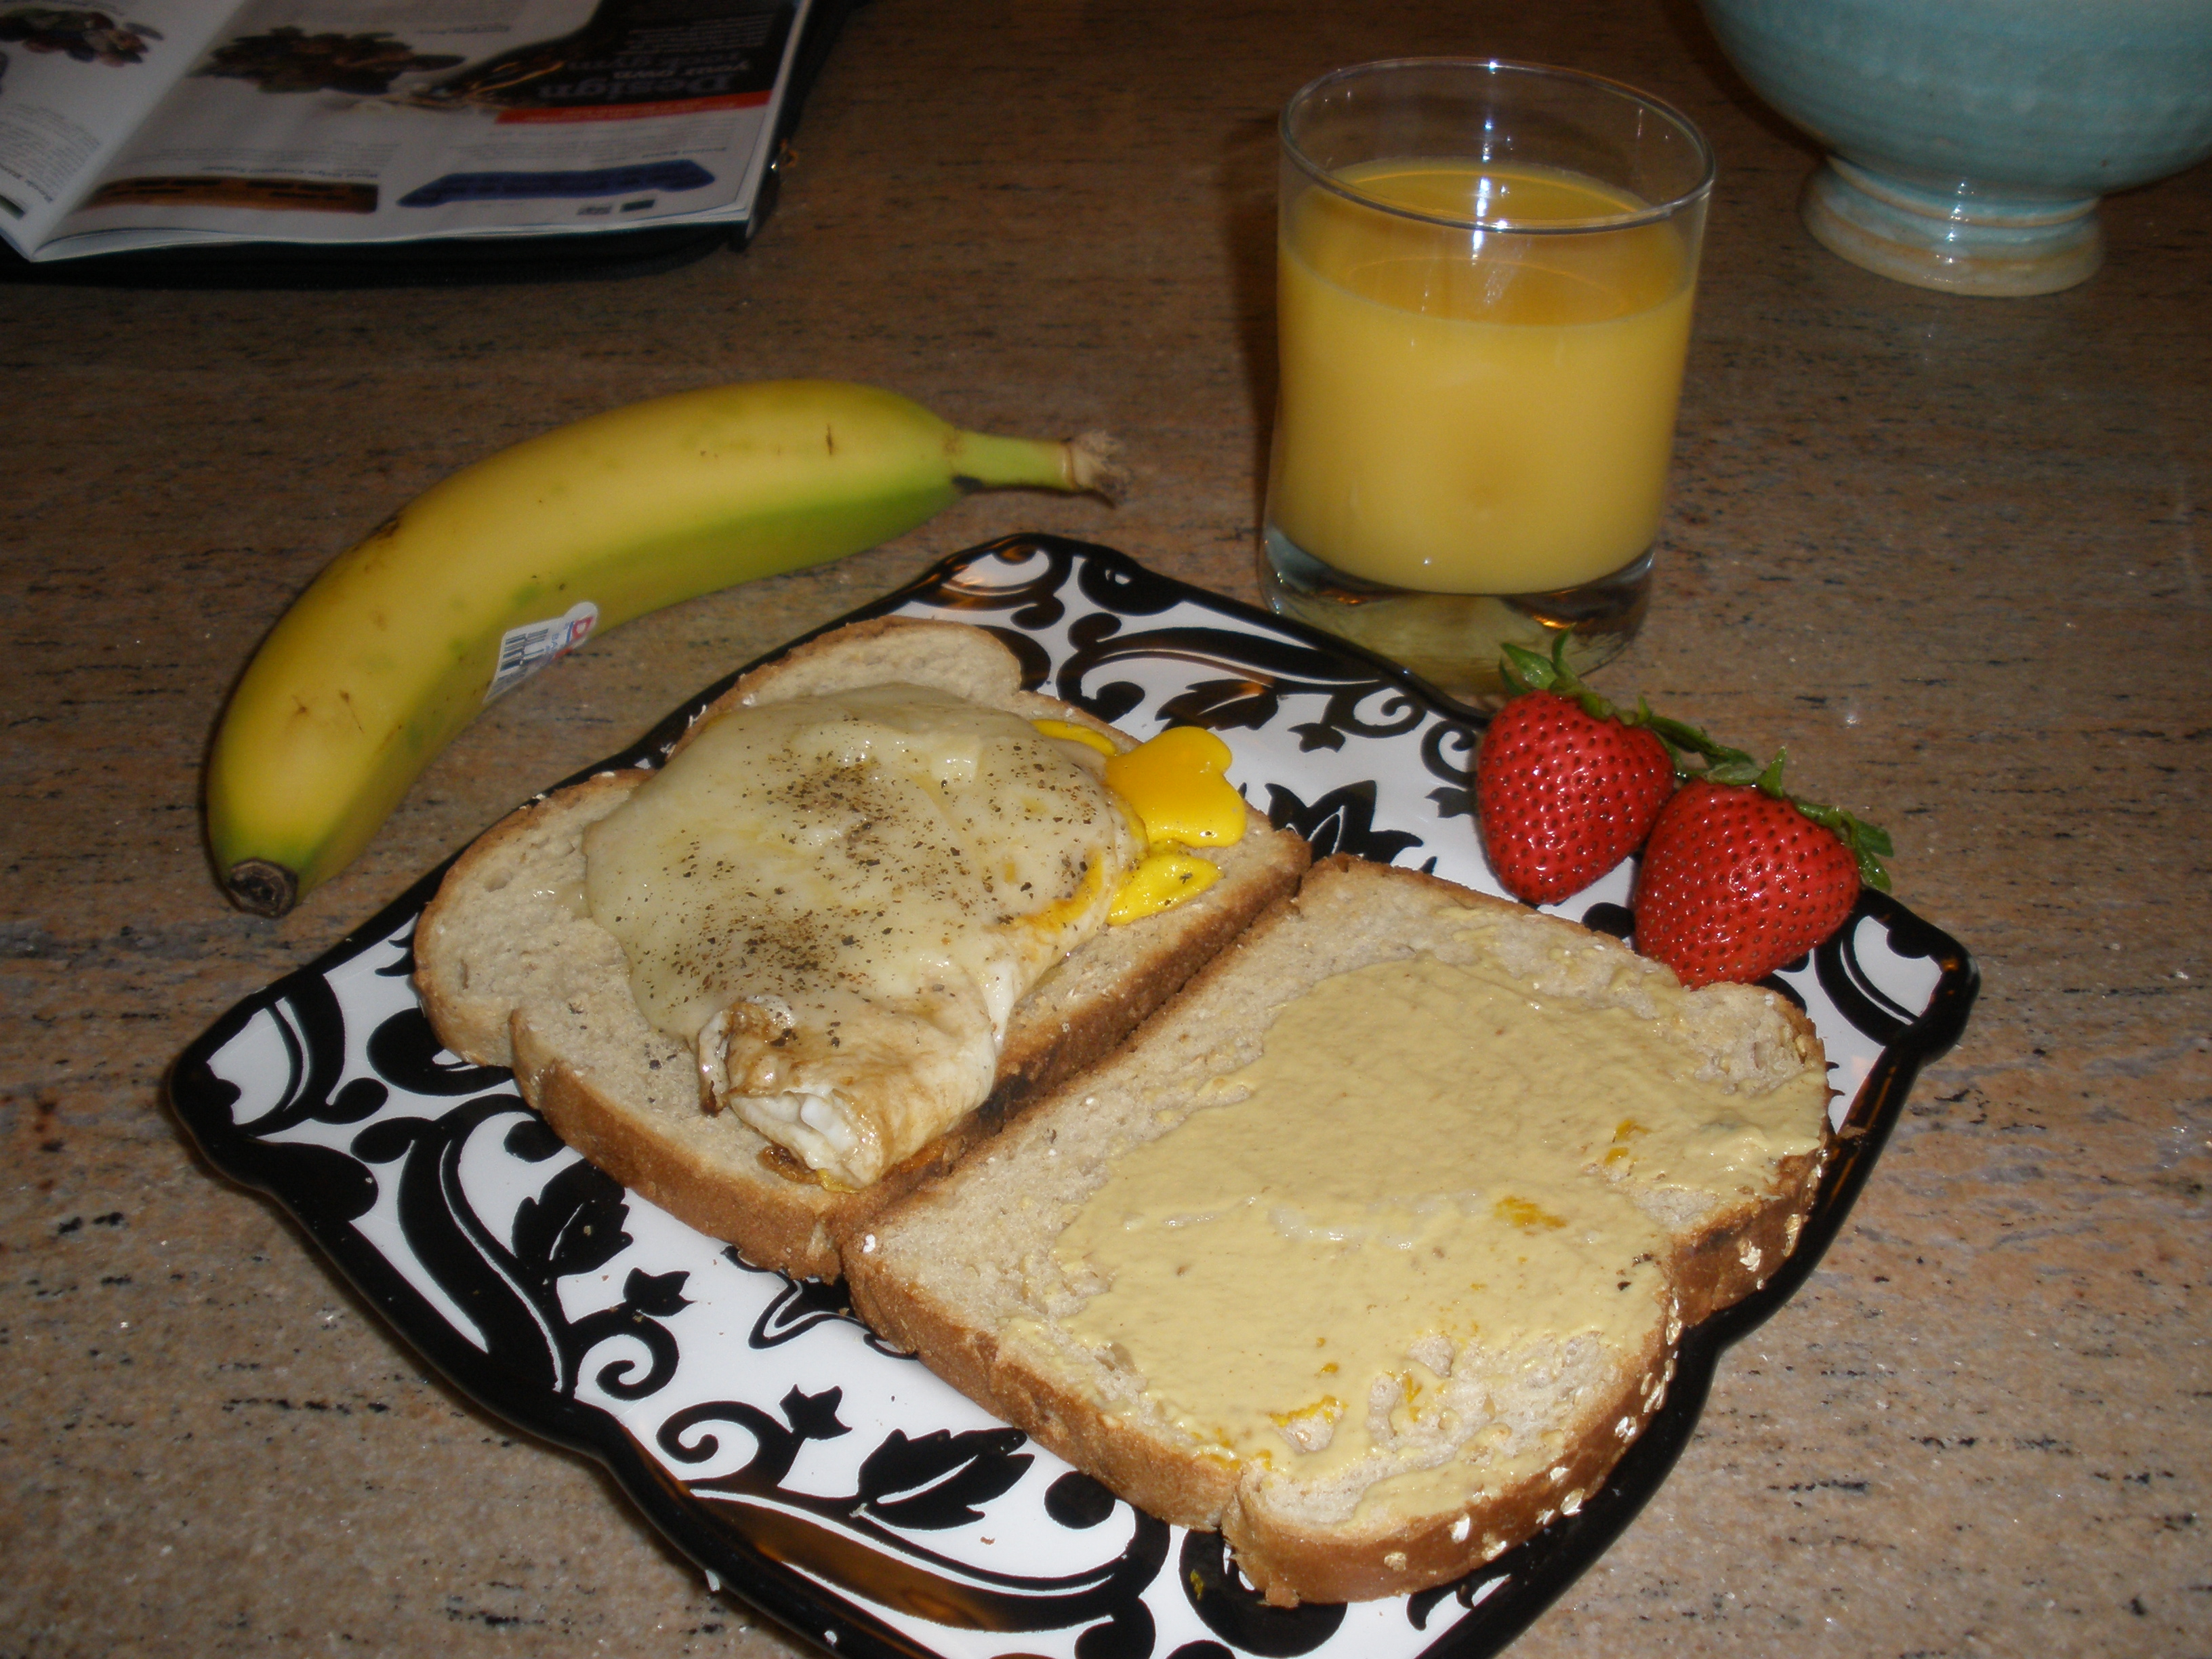 Home :: egg and extra sharp cheddar cheese sandwich on oatnut bread with cracked pepper and a smeer of grey poupon. strawberries and banana and oj for three different fruits!